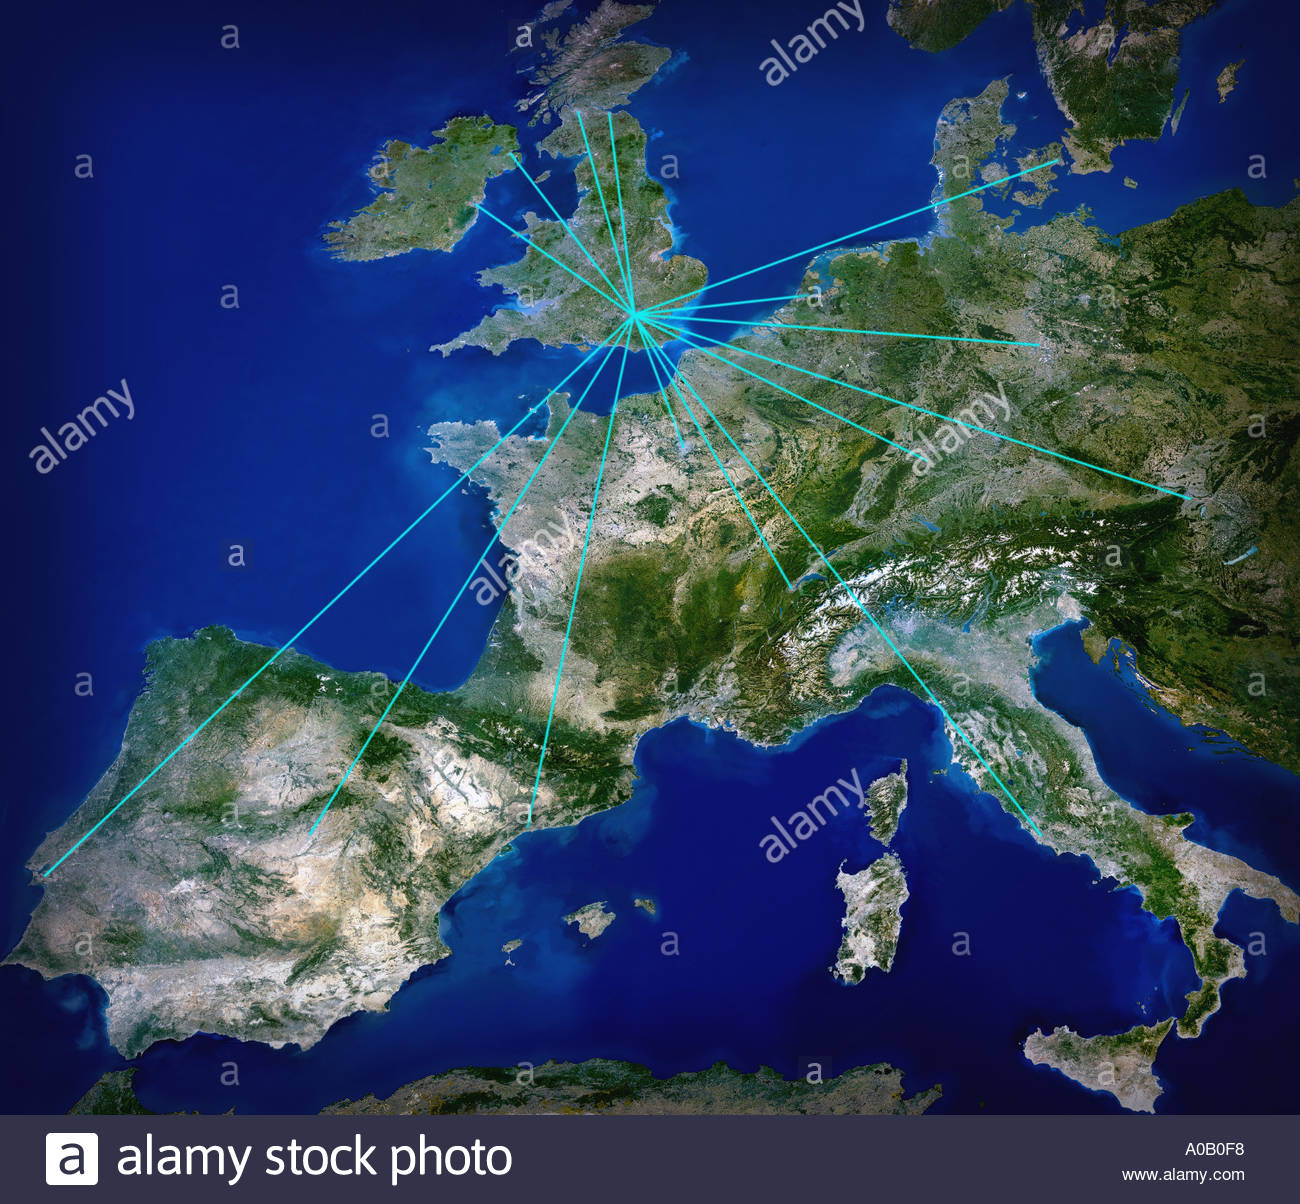 Destinations in Europe - Stock Image